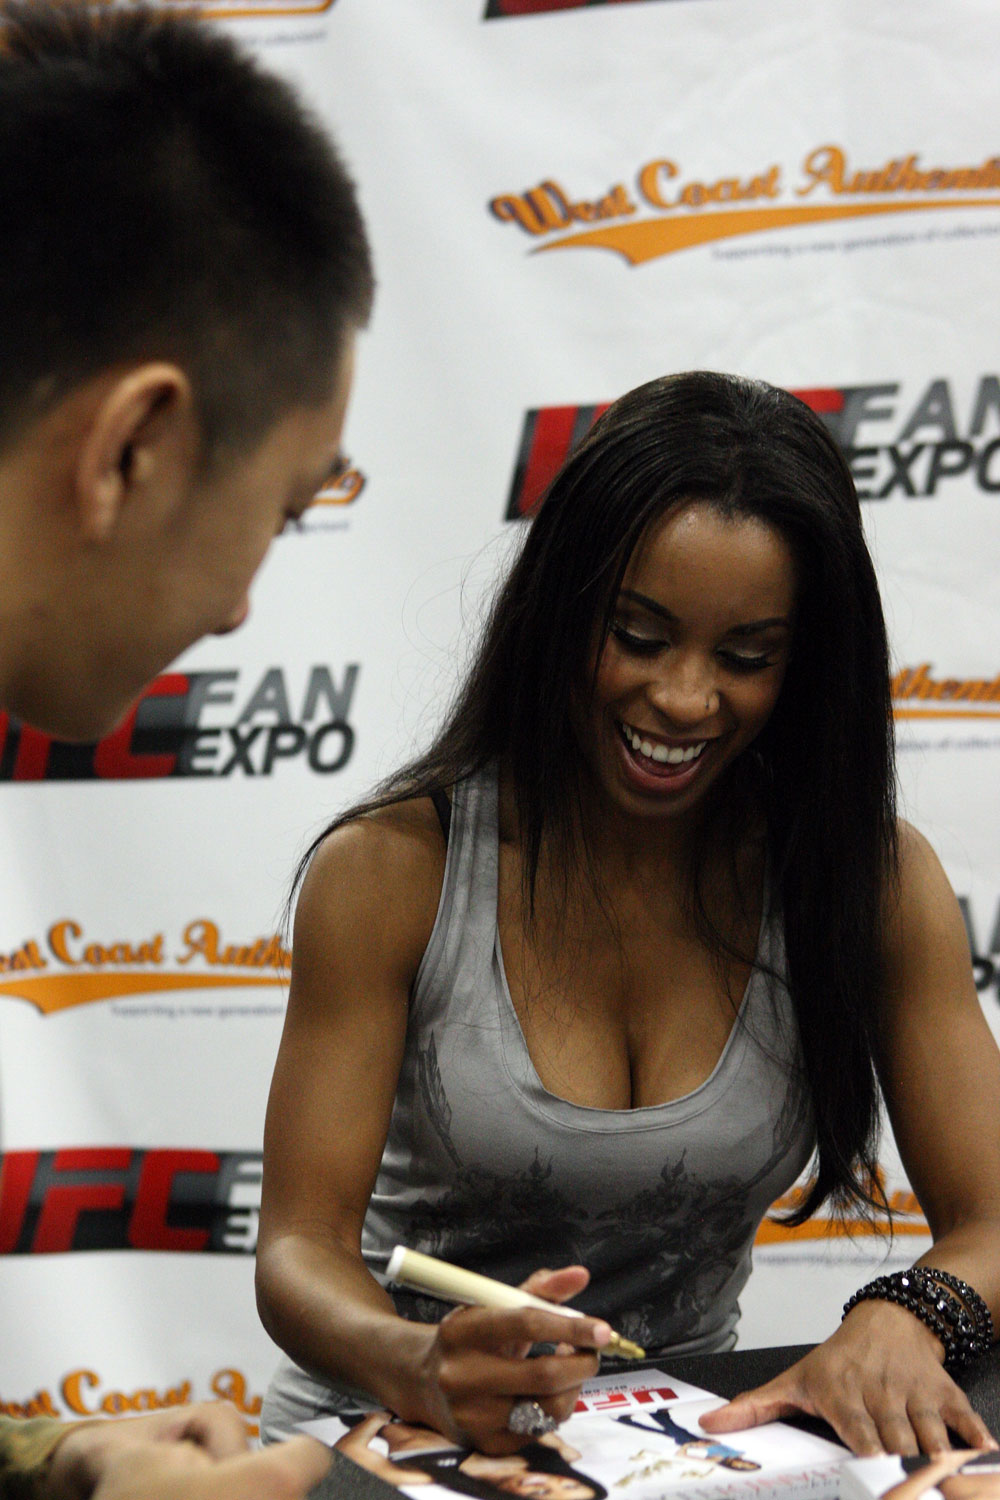 Octagon Girl Chandella Powell signs autographs